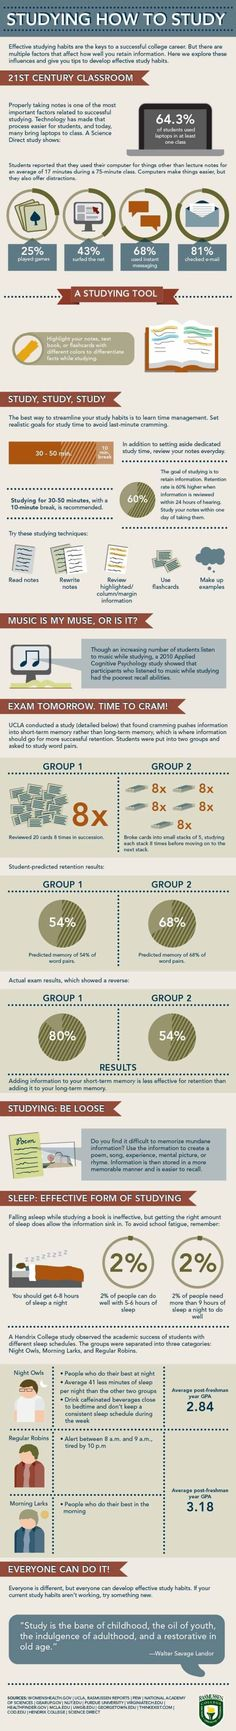 280 best eDUCATION images on Pinterest   Learning, Gym and ...